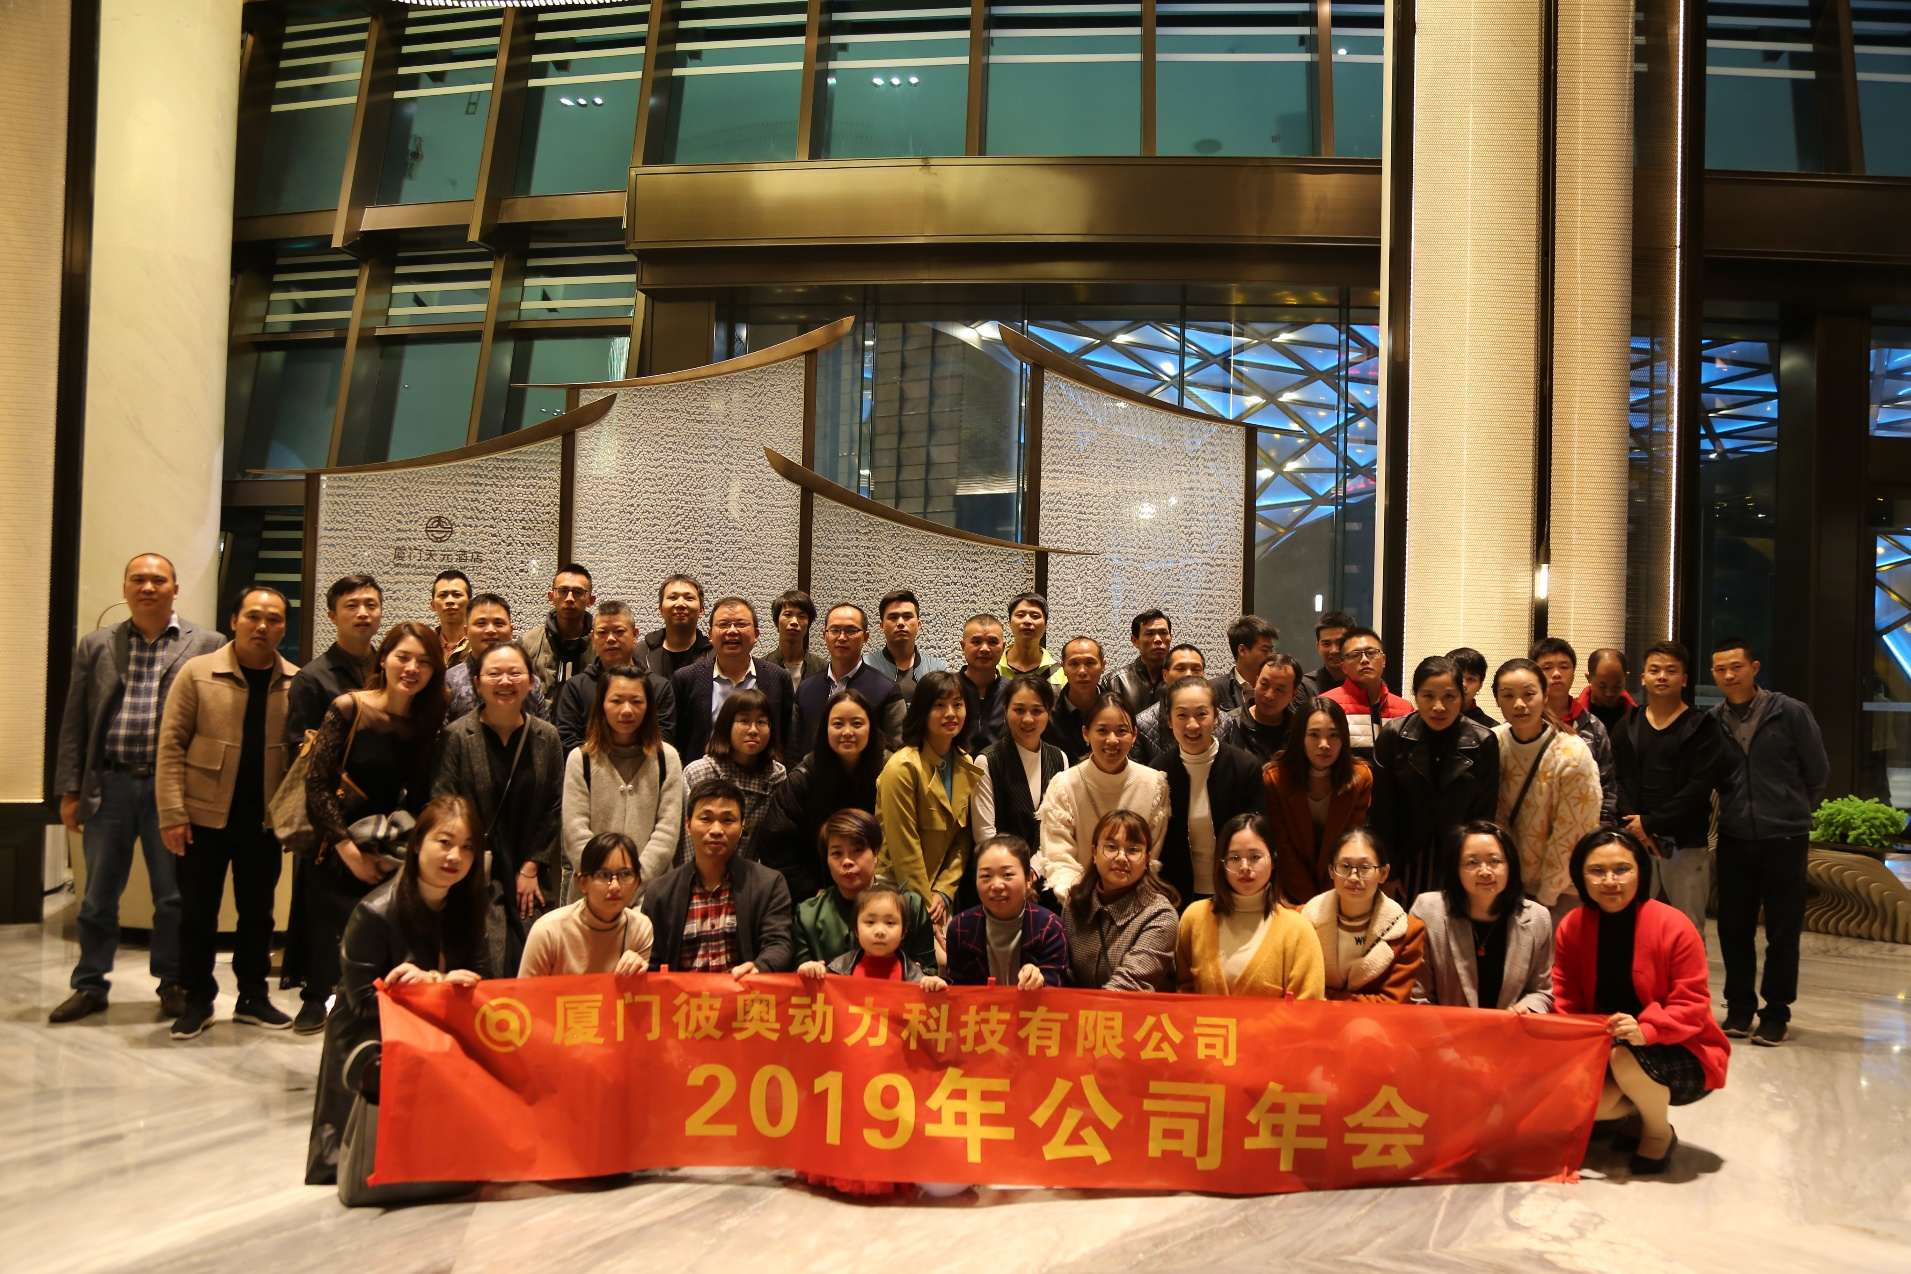 Cohesion and unity for a win-win future——Report from Biao Power 2019 end-year feast